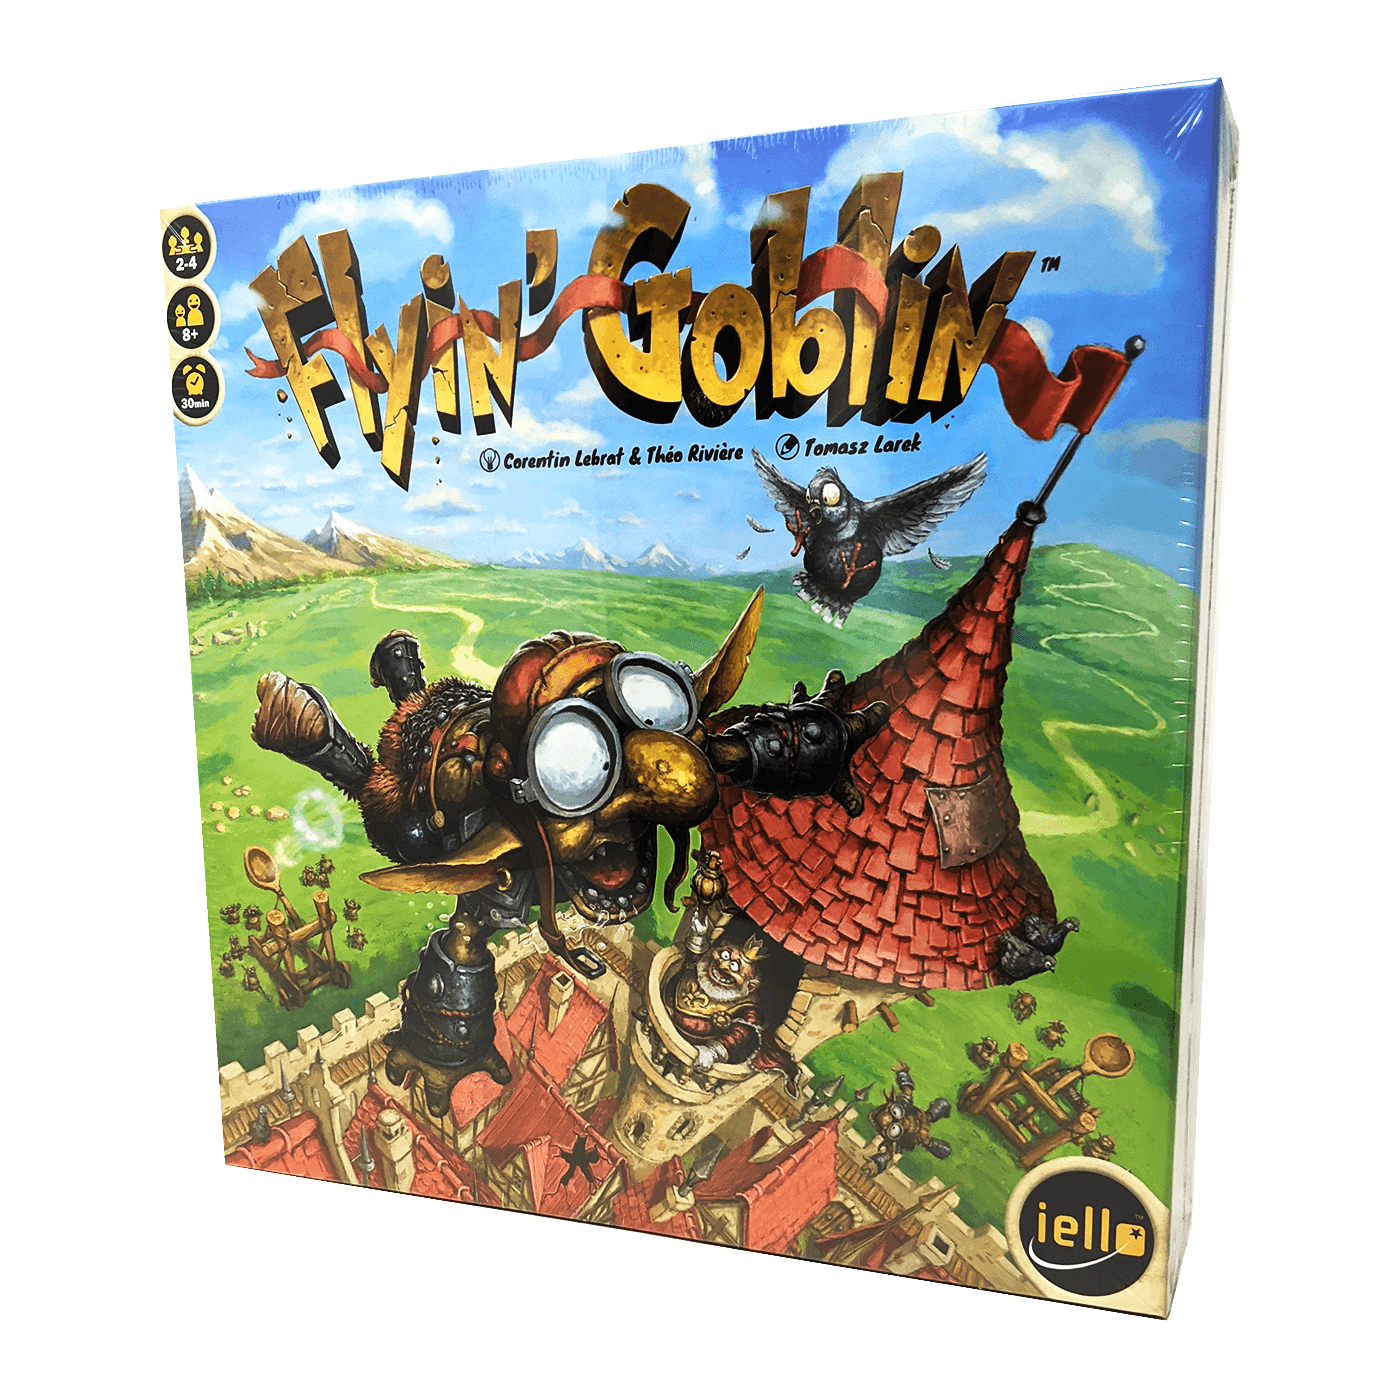 Flyin' Goblin box front: goblins with large ears, noses, and flight goggles flap around a castle tower